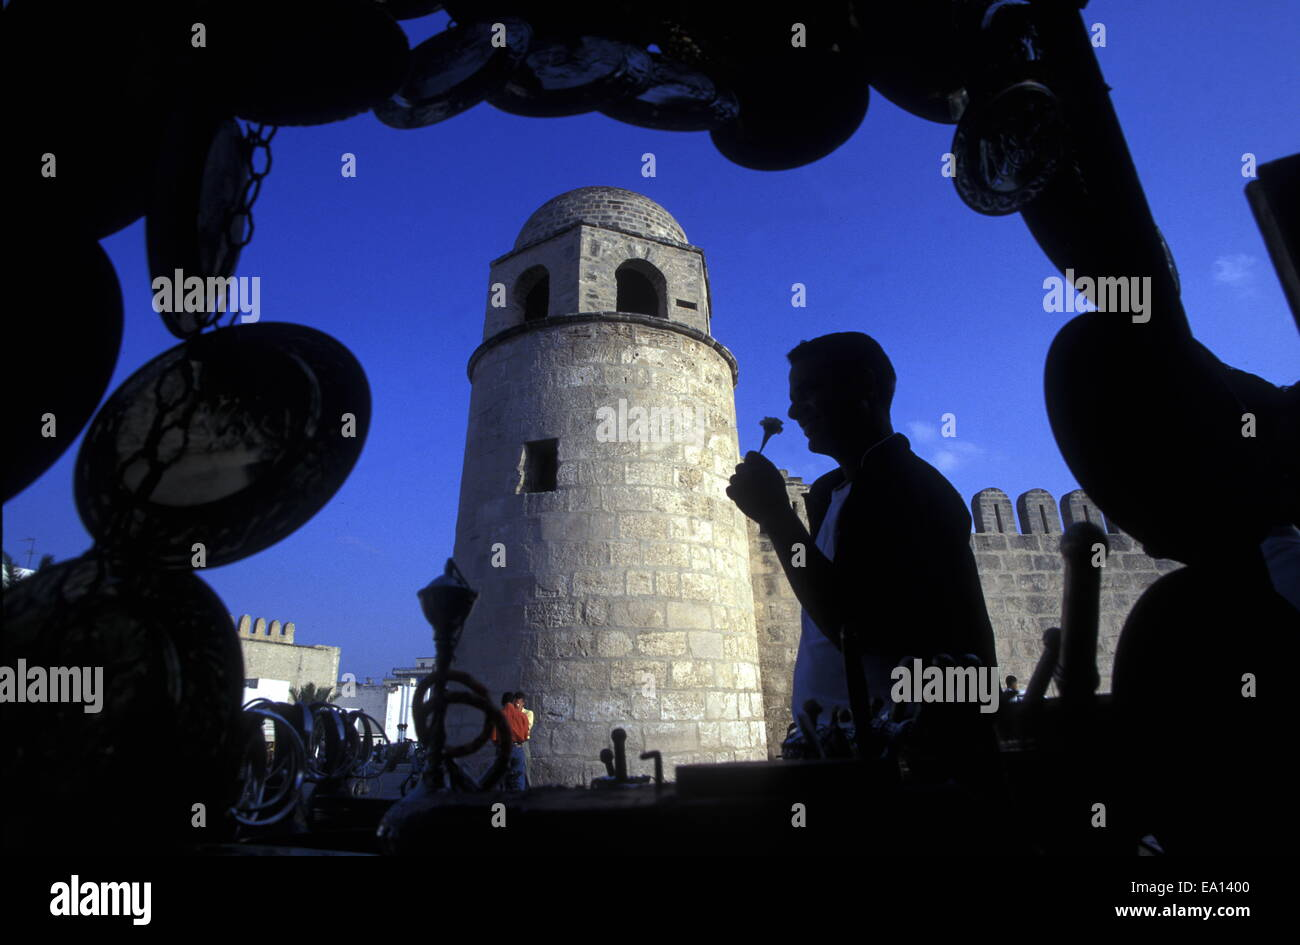 TUNISIA - Stock Image